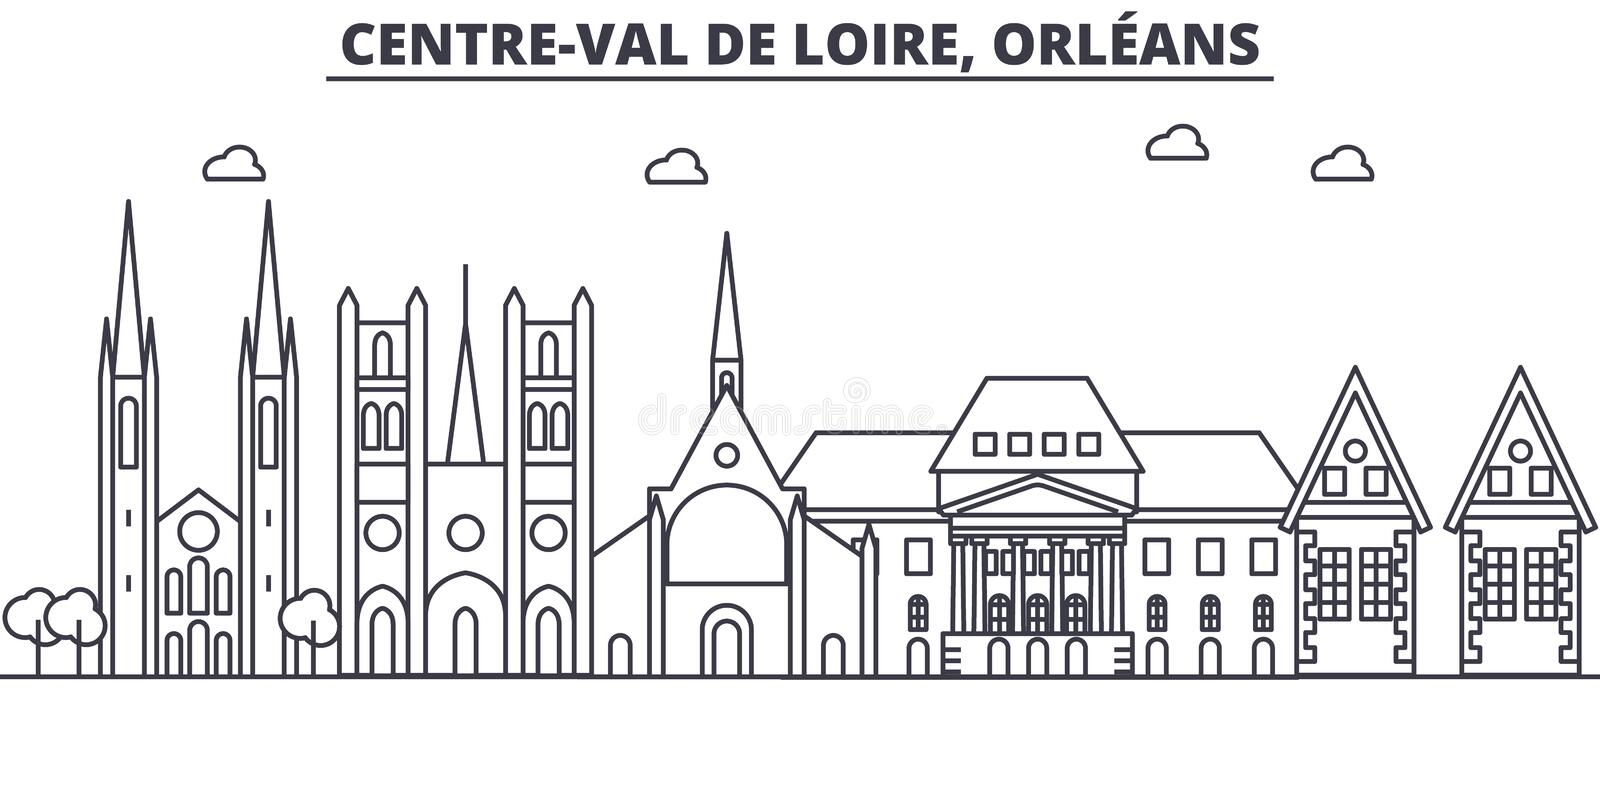 France, Orleans architecture line skyline illustration. Linear vector cityscape with famous landmarks, city sights vector illustration